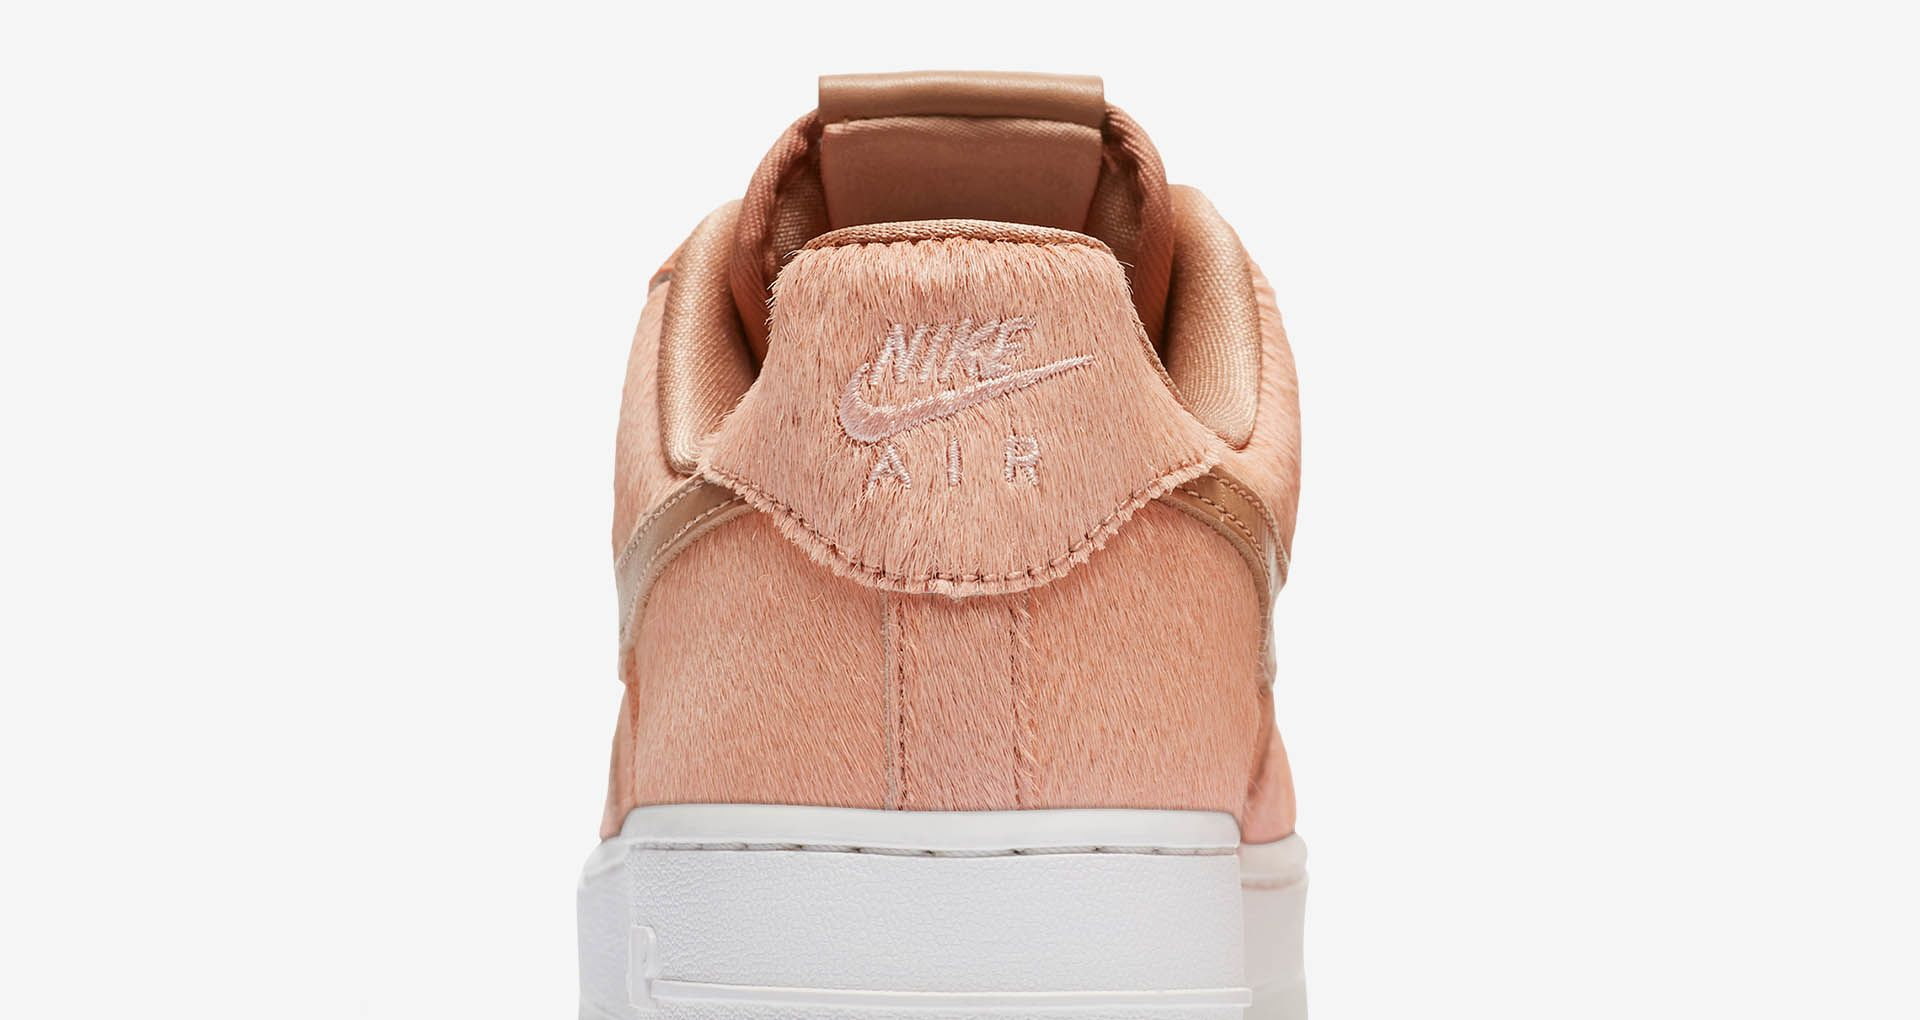 Women's 07 Lx Air 'artic Nike 1 Force Orange'Nike⁠Snkrs XOikPZu